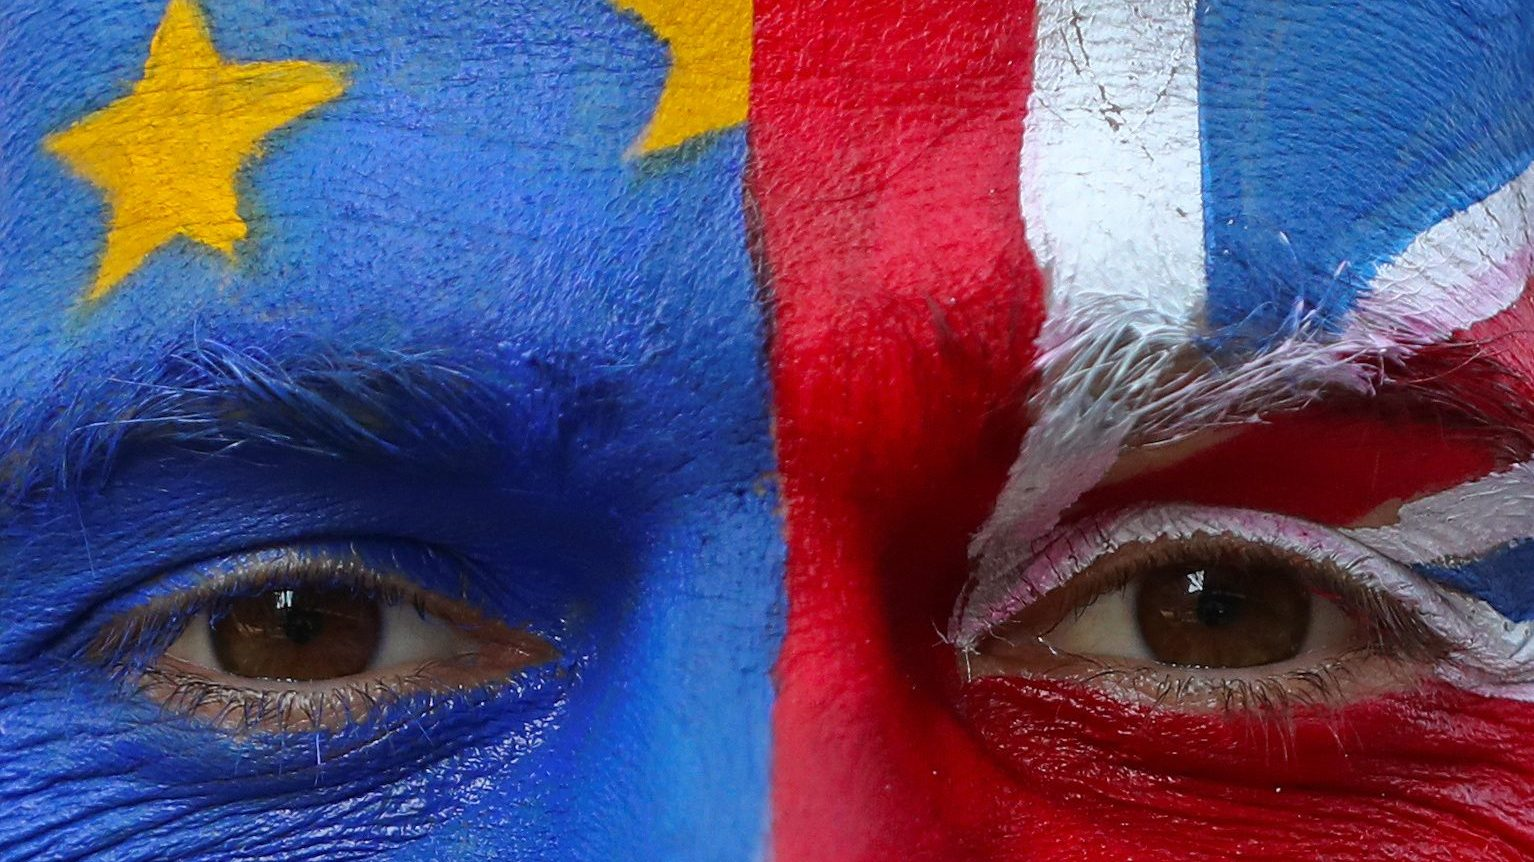 An anti-Brexit protester with painted EU and British flags on his face is seen ahead of a EU Summit in front of European Commission headquarters in Brussels, Belgium March 21, 2019.